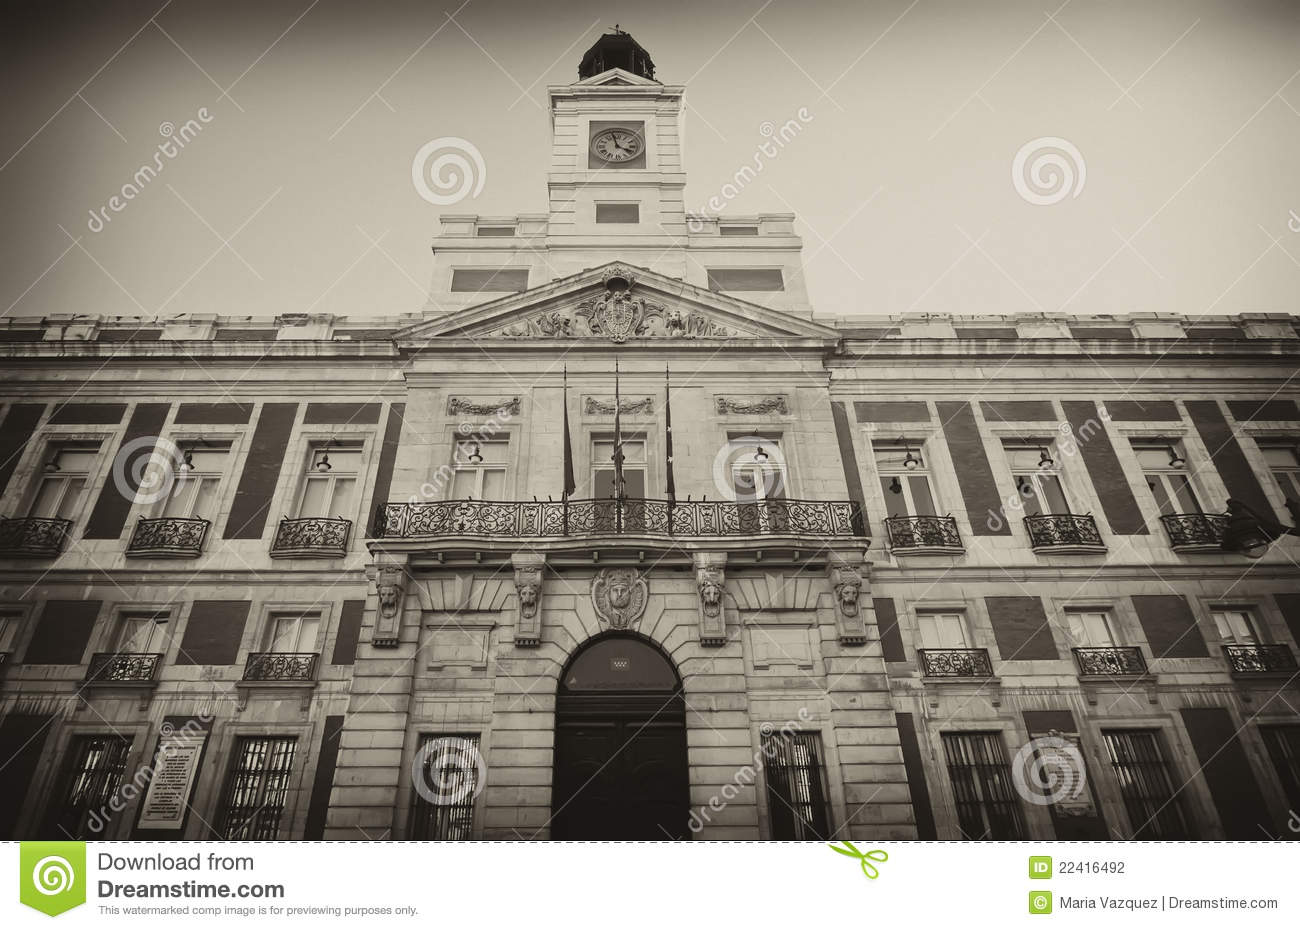 Edificio real casa de correos en madrid espa a for Edificio puerta real madrid